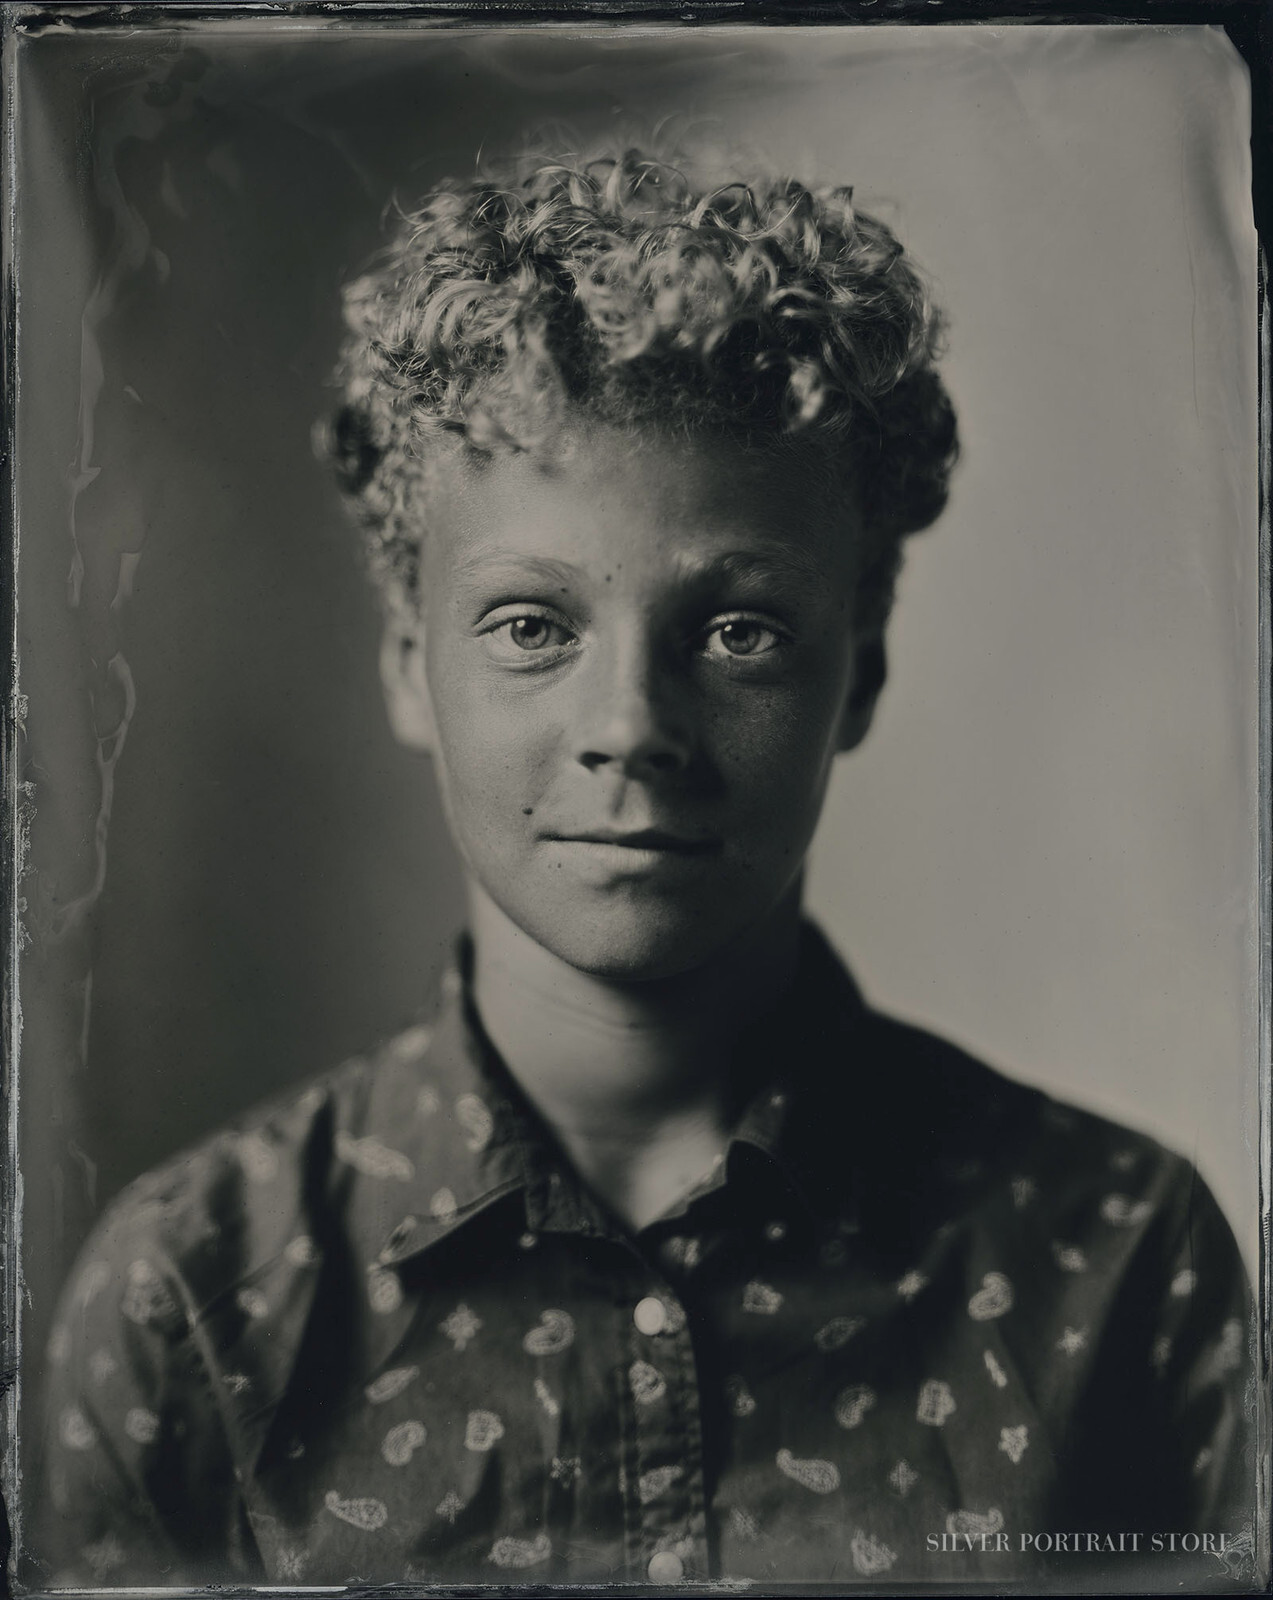 Ohle-Silver Portrait Store-Scan from Wet plate collodion-Tintype 20 x 25 cm